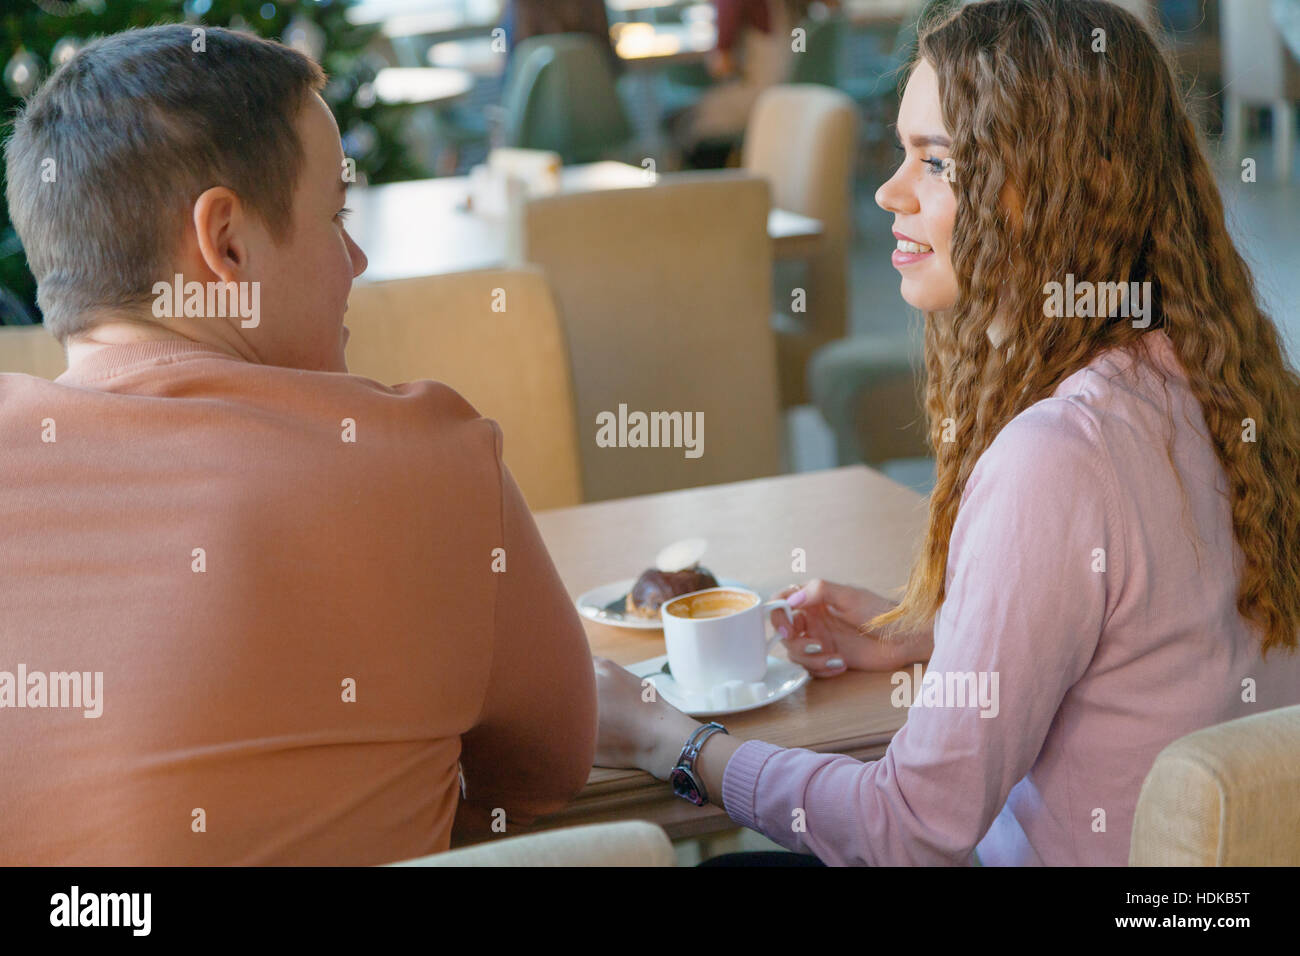 Femme et d'un homme in cafe Photo Stock